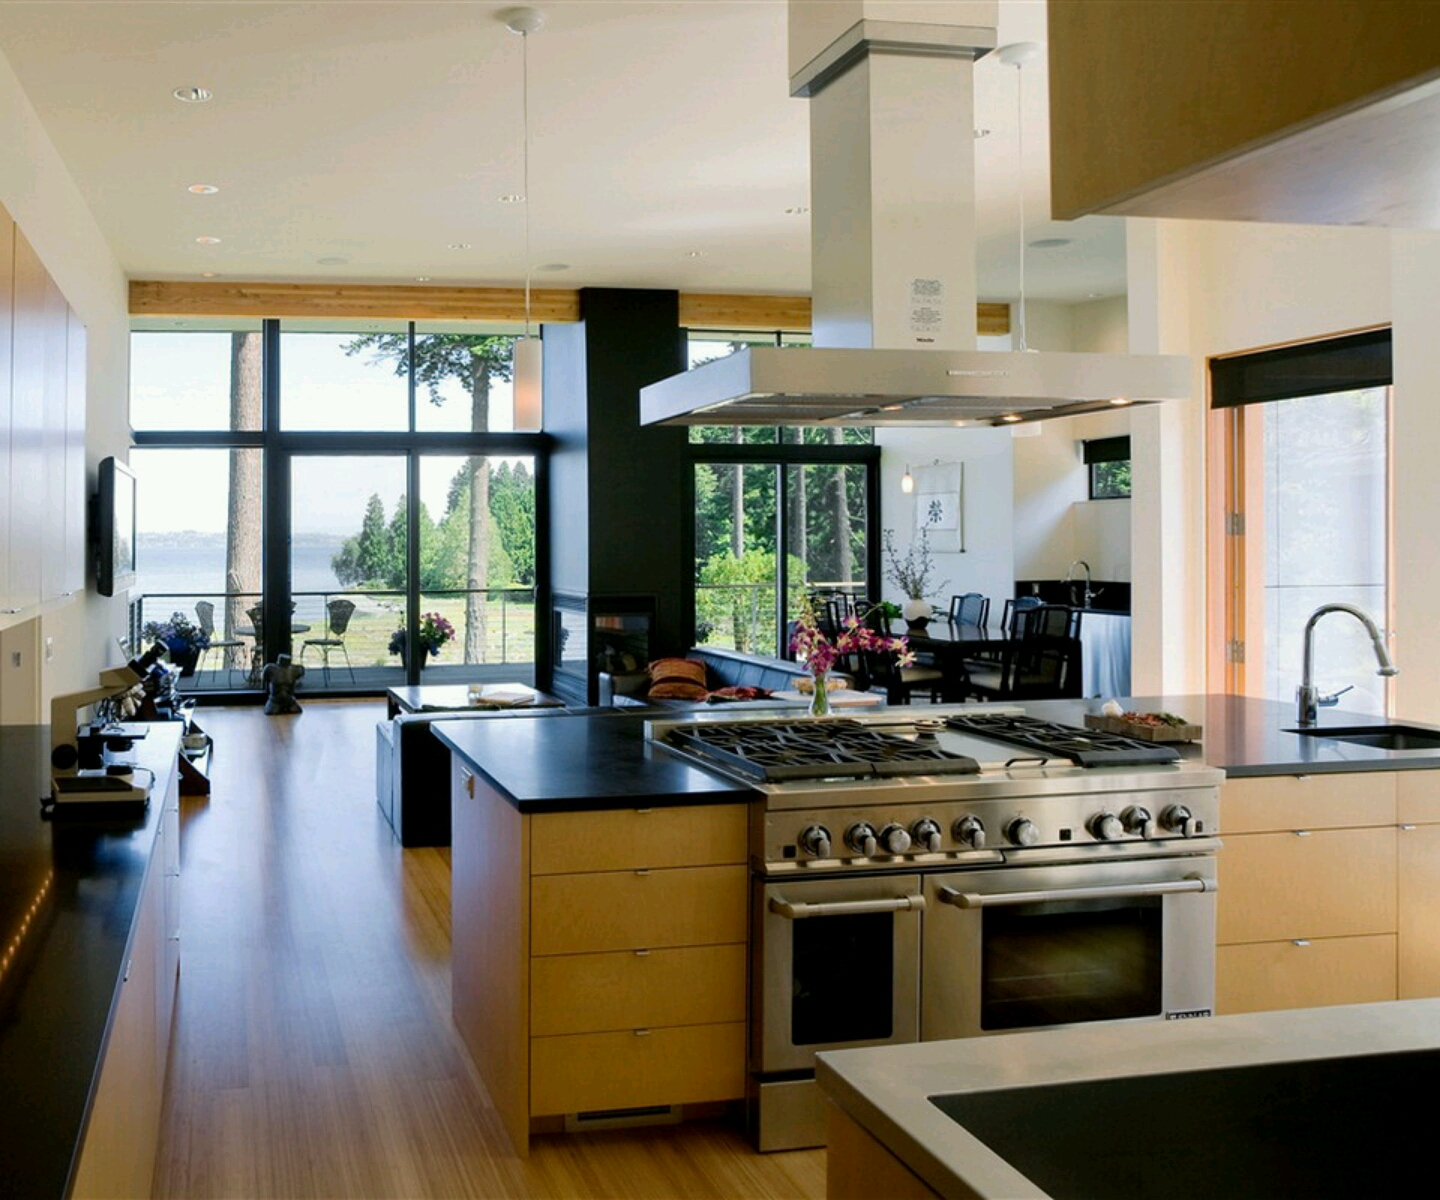 New Home Designs Latest Ultra Modern Kitchen Designs Ideas: New Home Designs Latest.: Modern Kitchen Designs Ideas